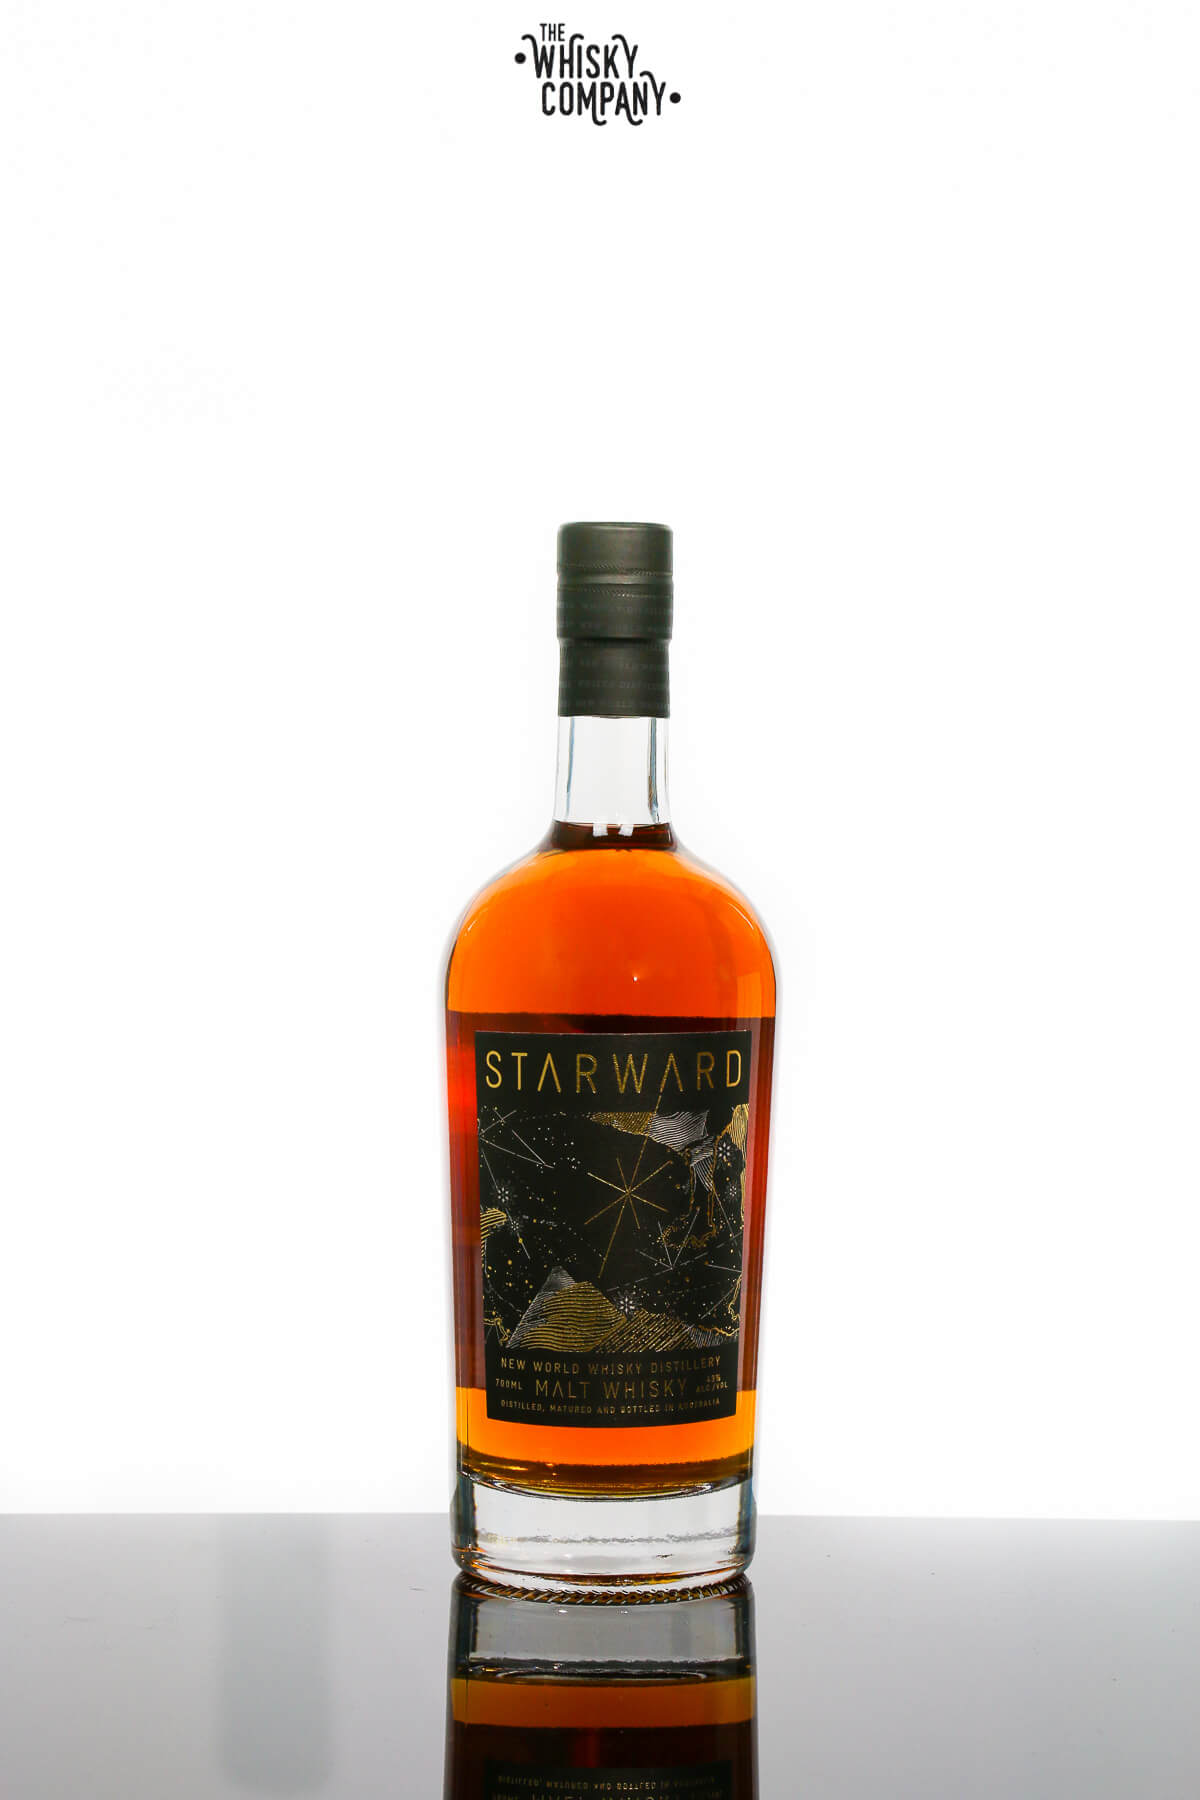 Starward Solera Australian Single Malt Whisky (700ml)